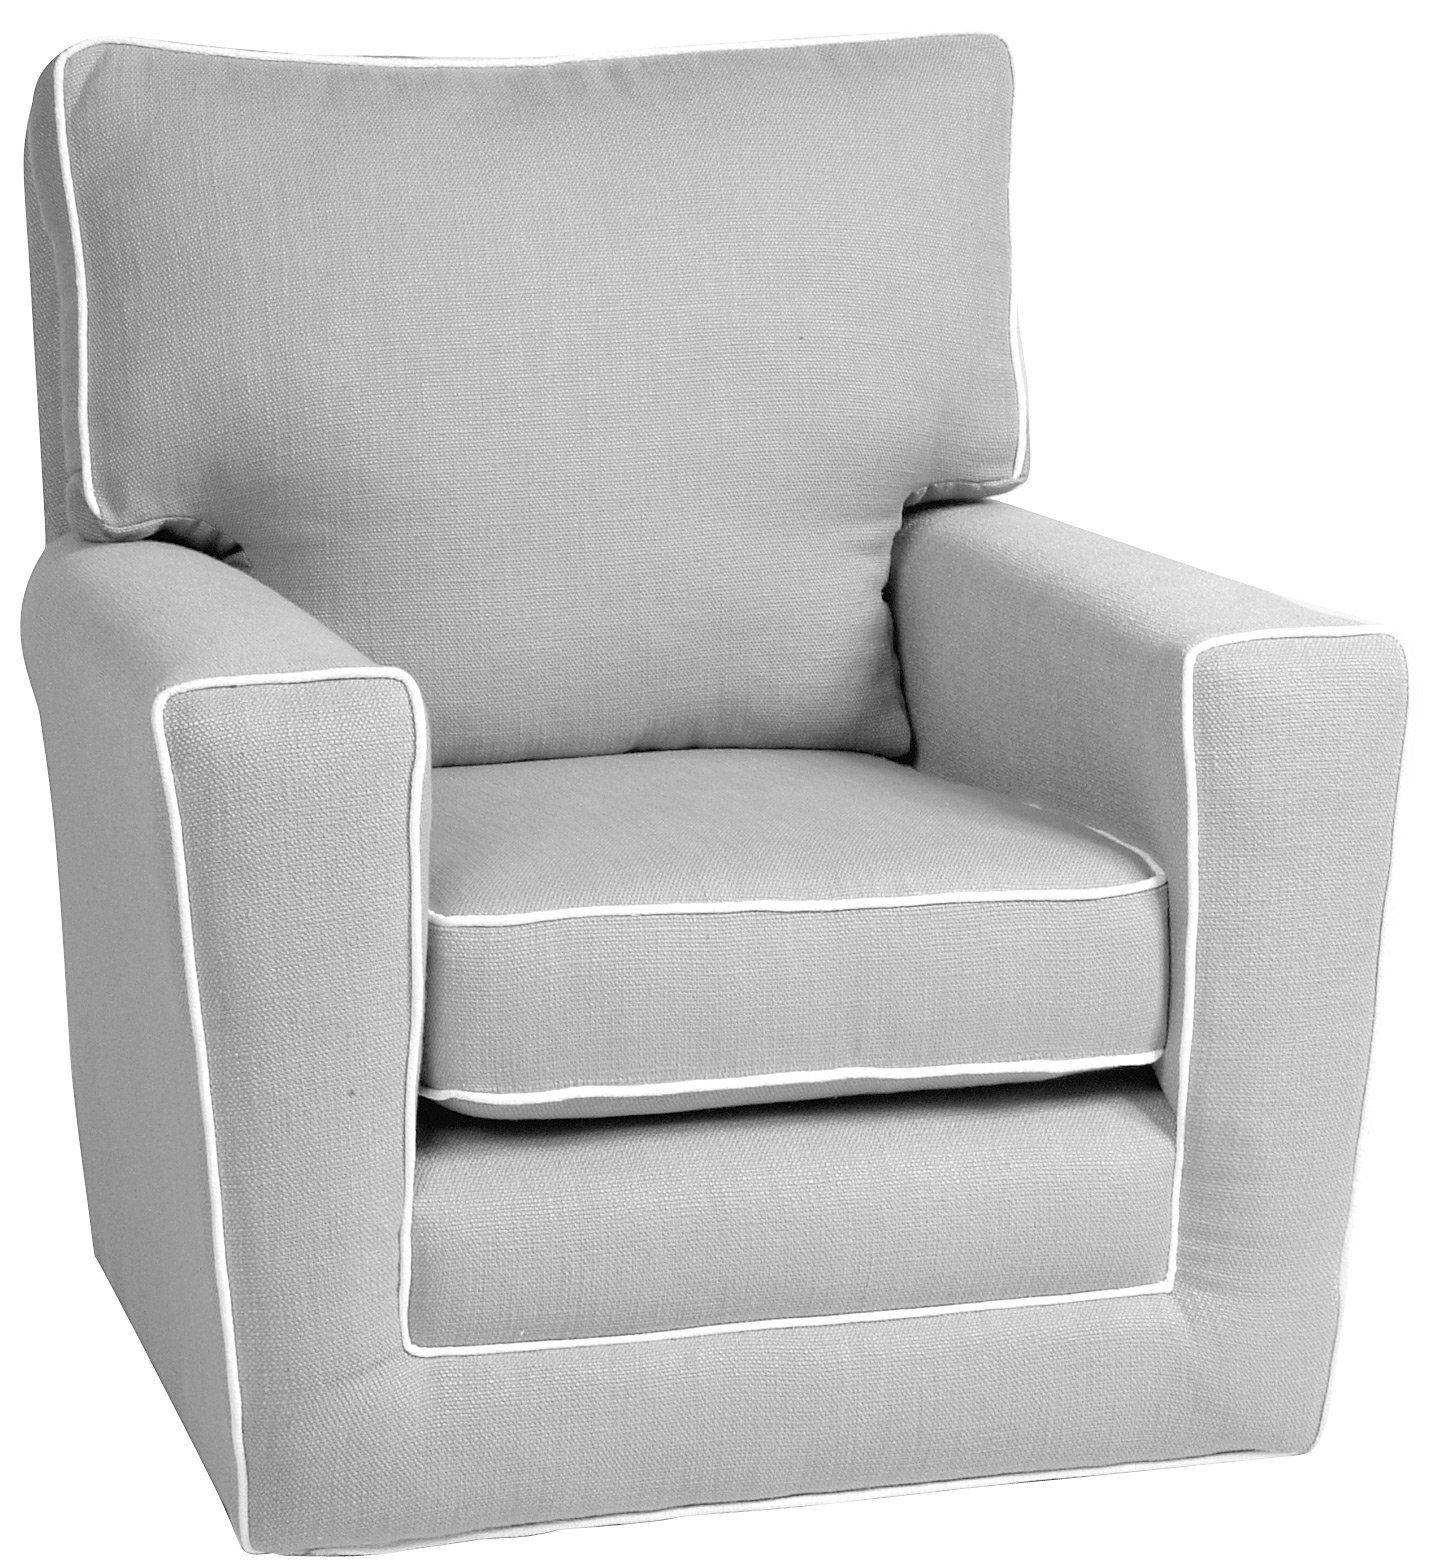 I Will Own A Little Castle Recliner For My Nursery No Way I'd Buy Throughout Katrina Grey Swivel Glider Chairs (View 5 of 25)